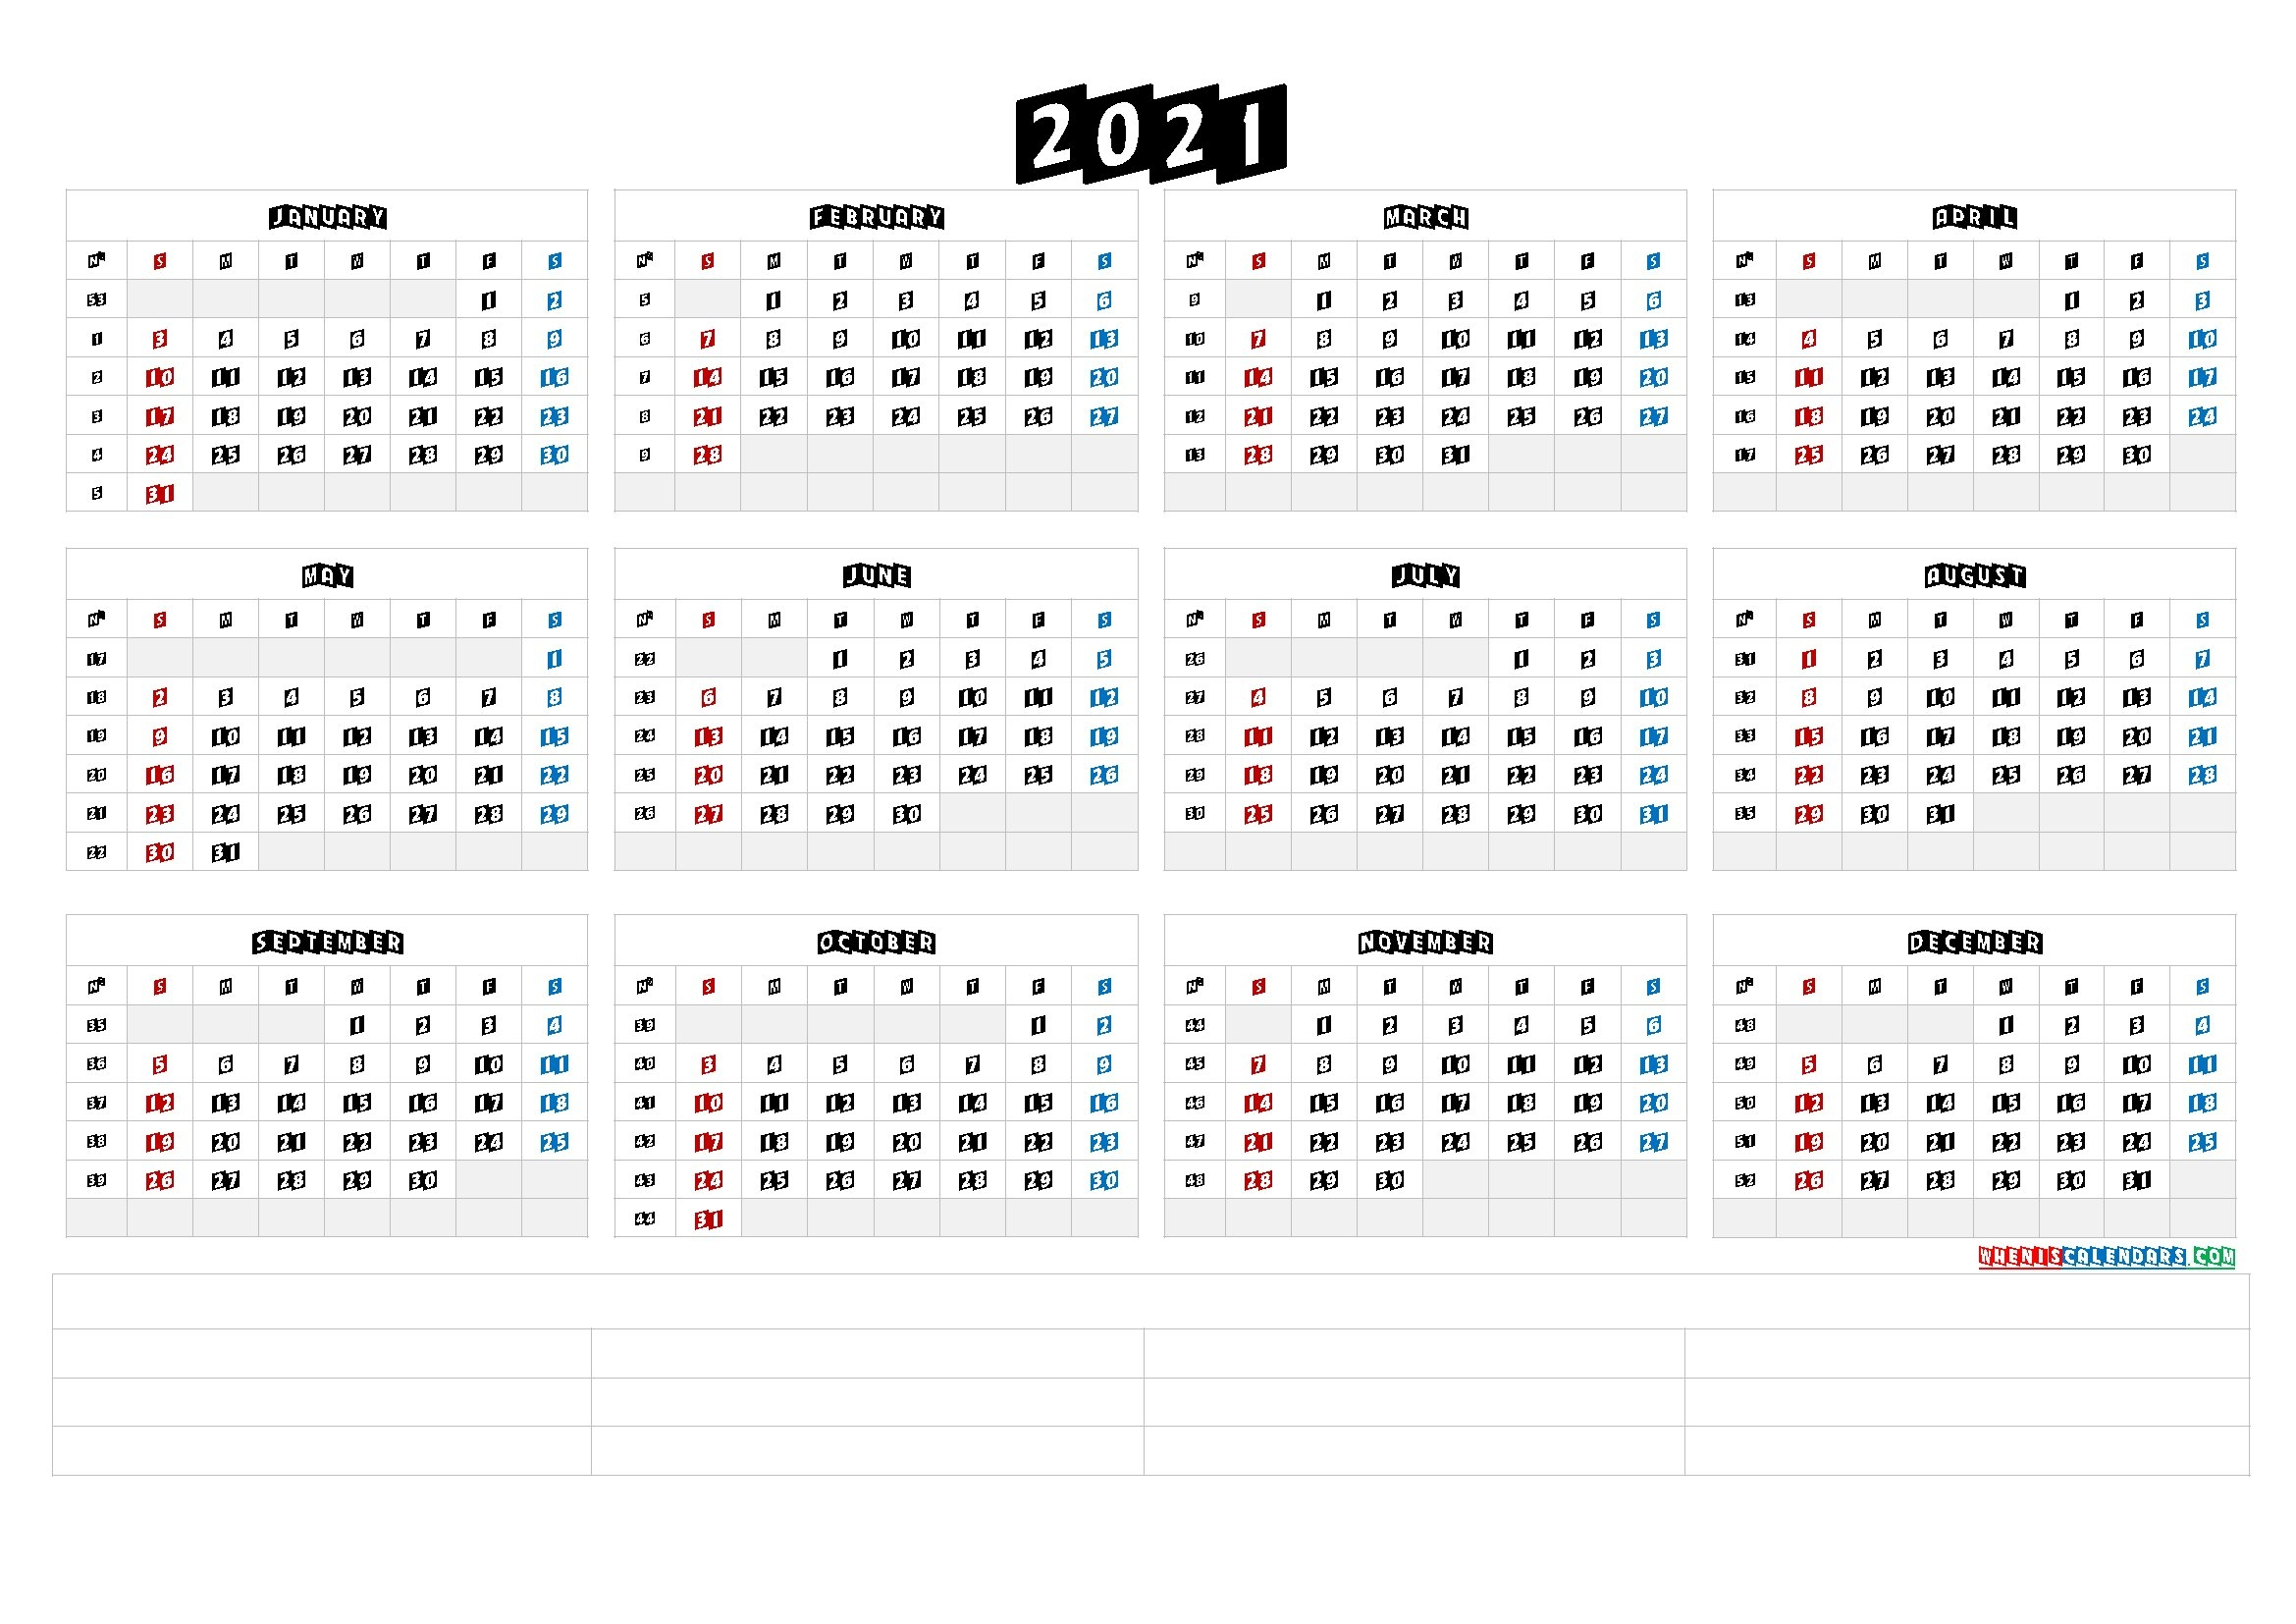 2021 Yearly Calendar Template Word - Calendraex with 2021 Yearly Calendar Template Printable Photo